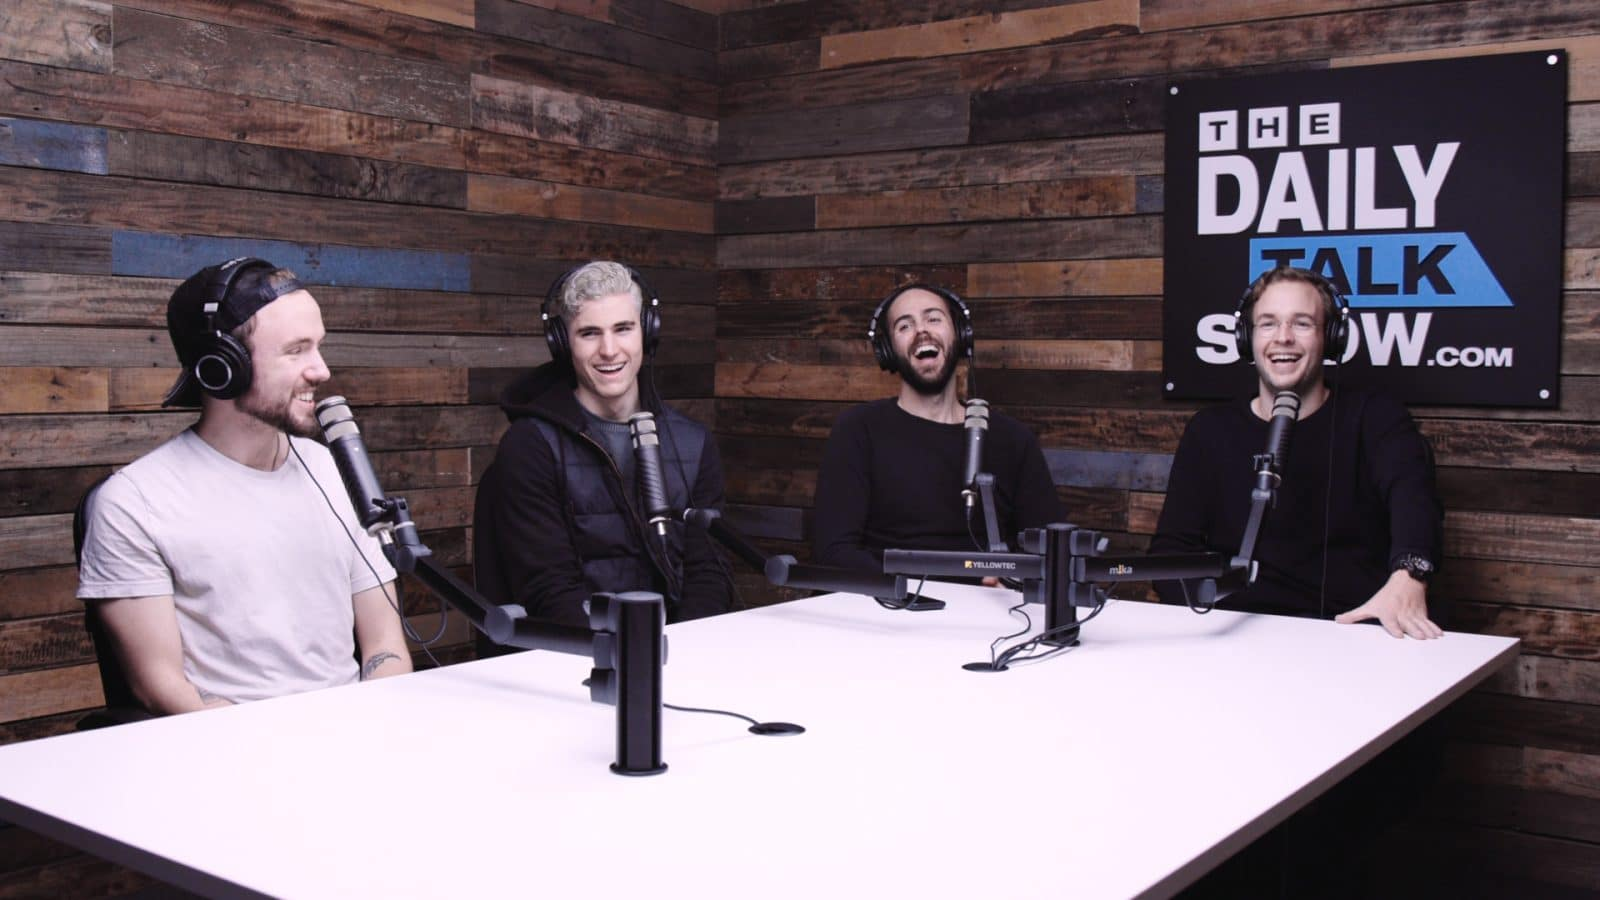 The-Daily-Talk-Show-414